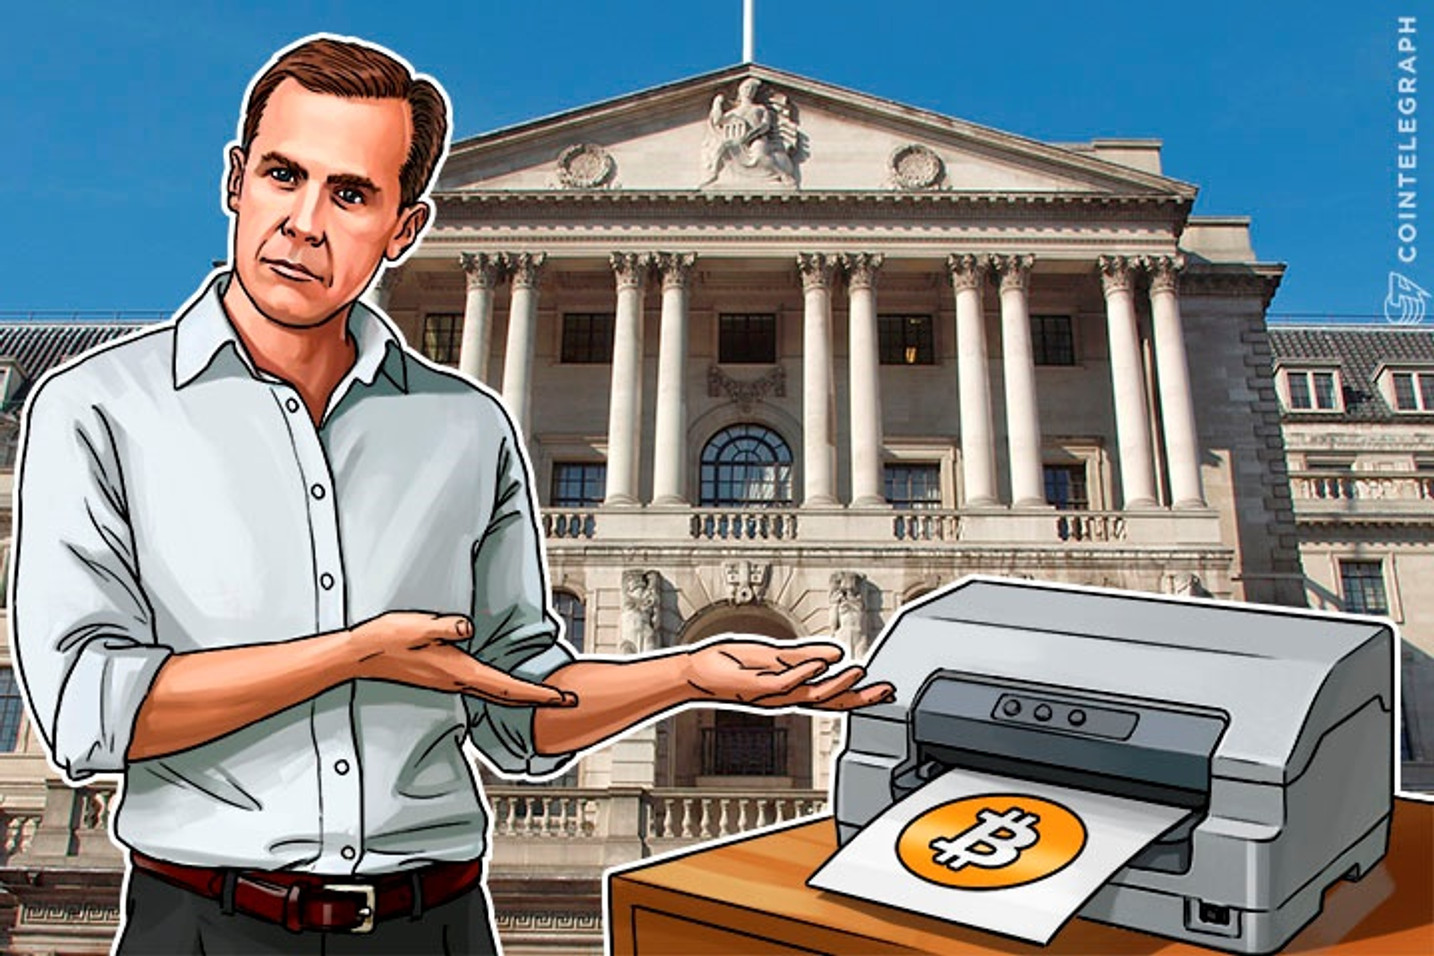 Central Bankers: If You Can't Beat Bitcoin, Print it and Control it